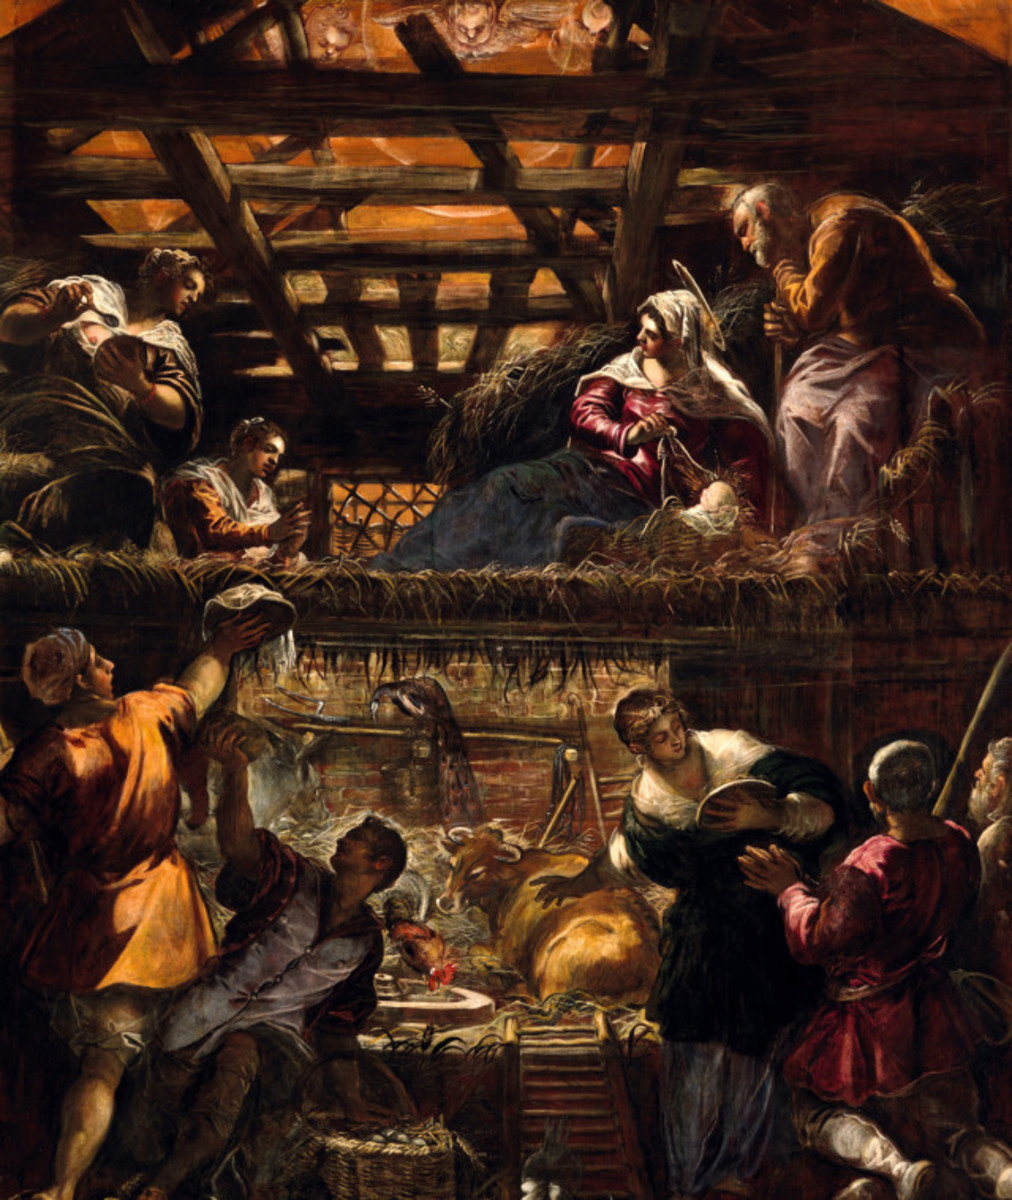 Jacopo Tintoretto, Adoration of the Shepherds (a. 1580), Venice Scuola Grande di San Rocco